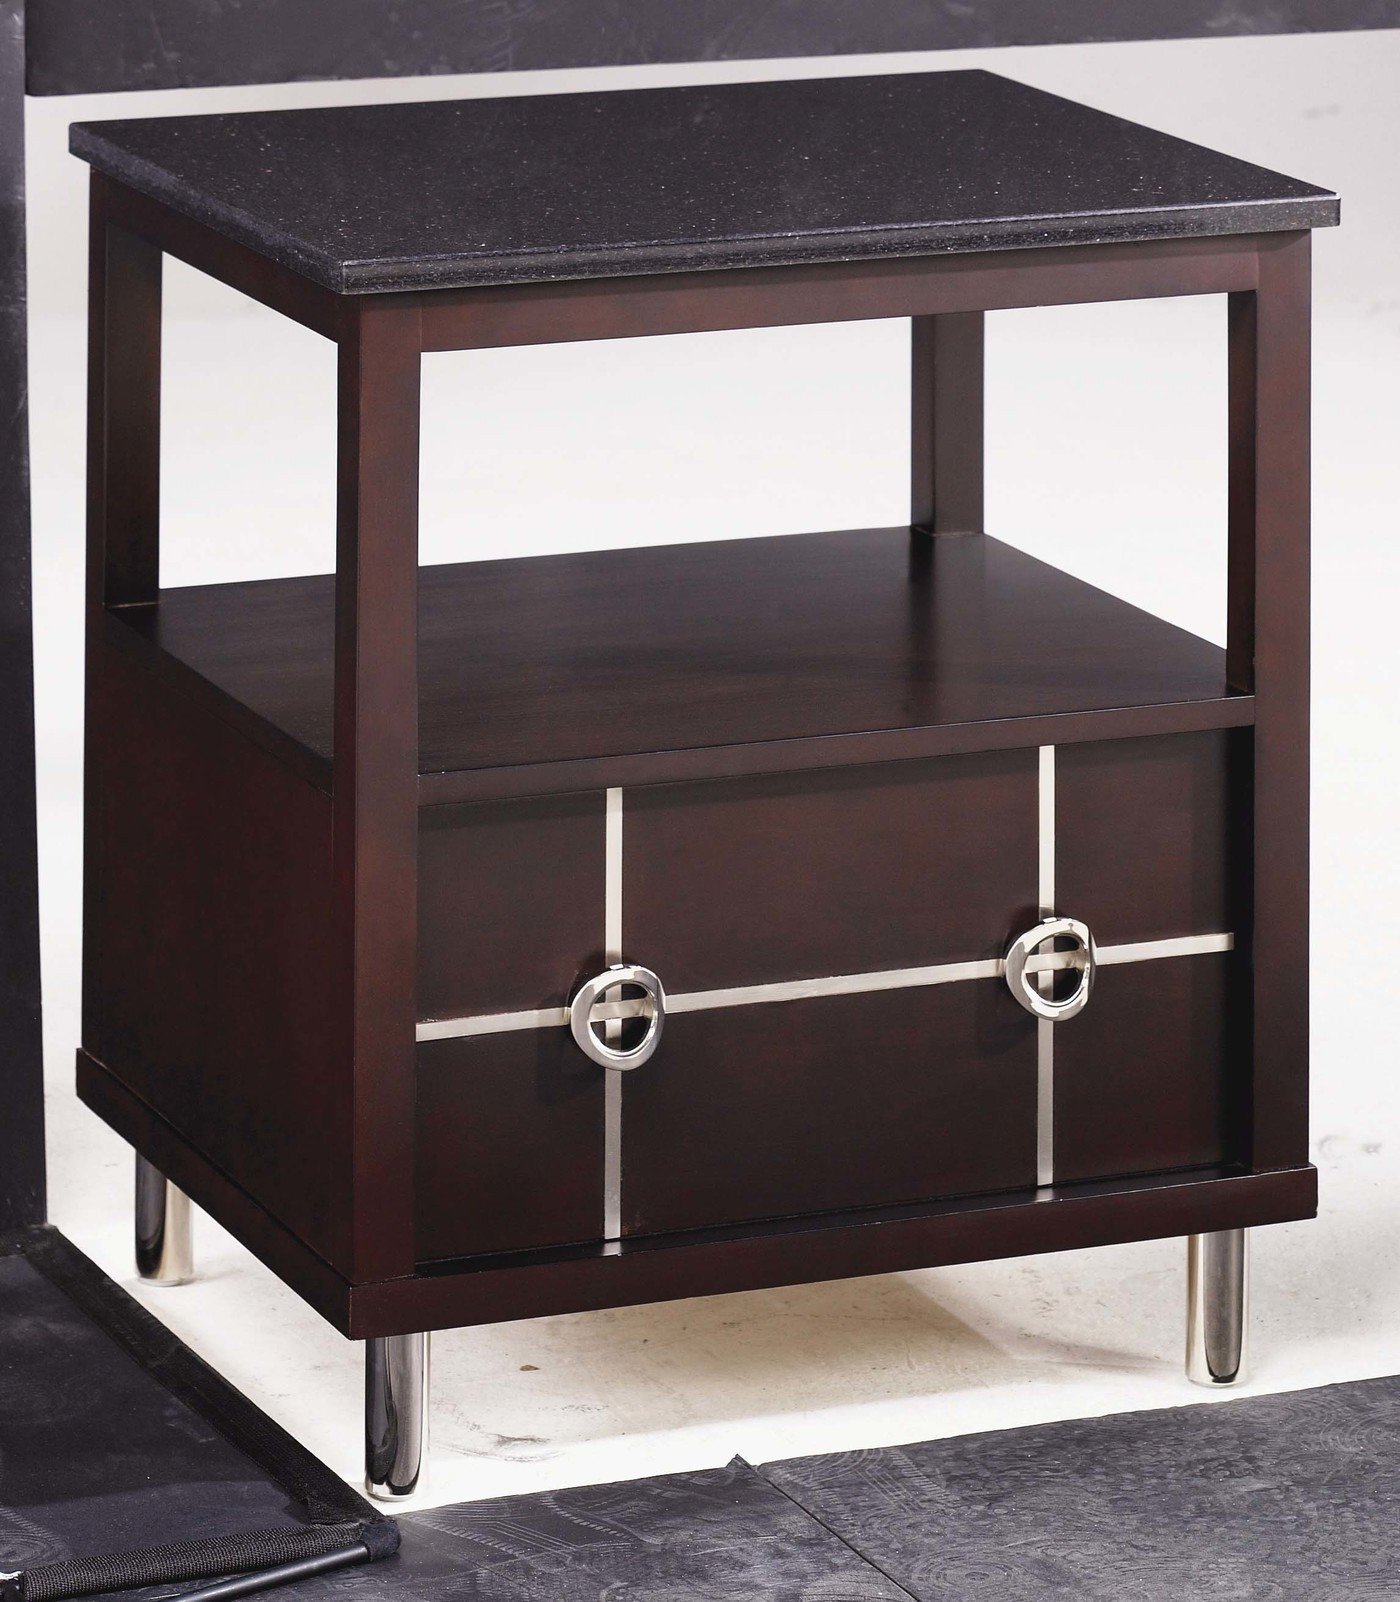 Specialty Furniture Designs by George Terrell at Coroflot.com